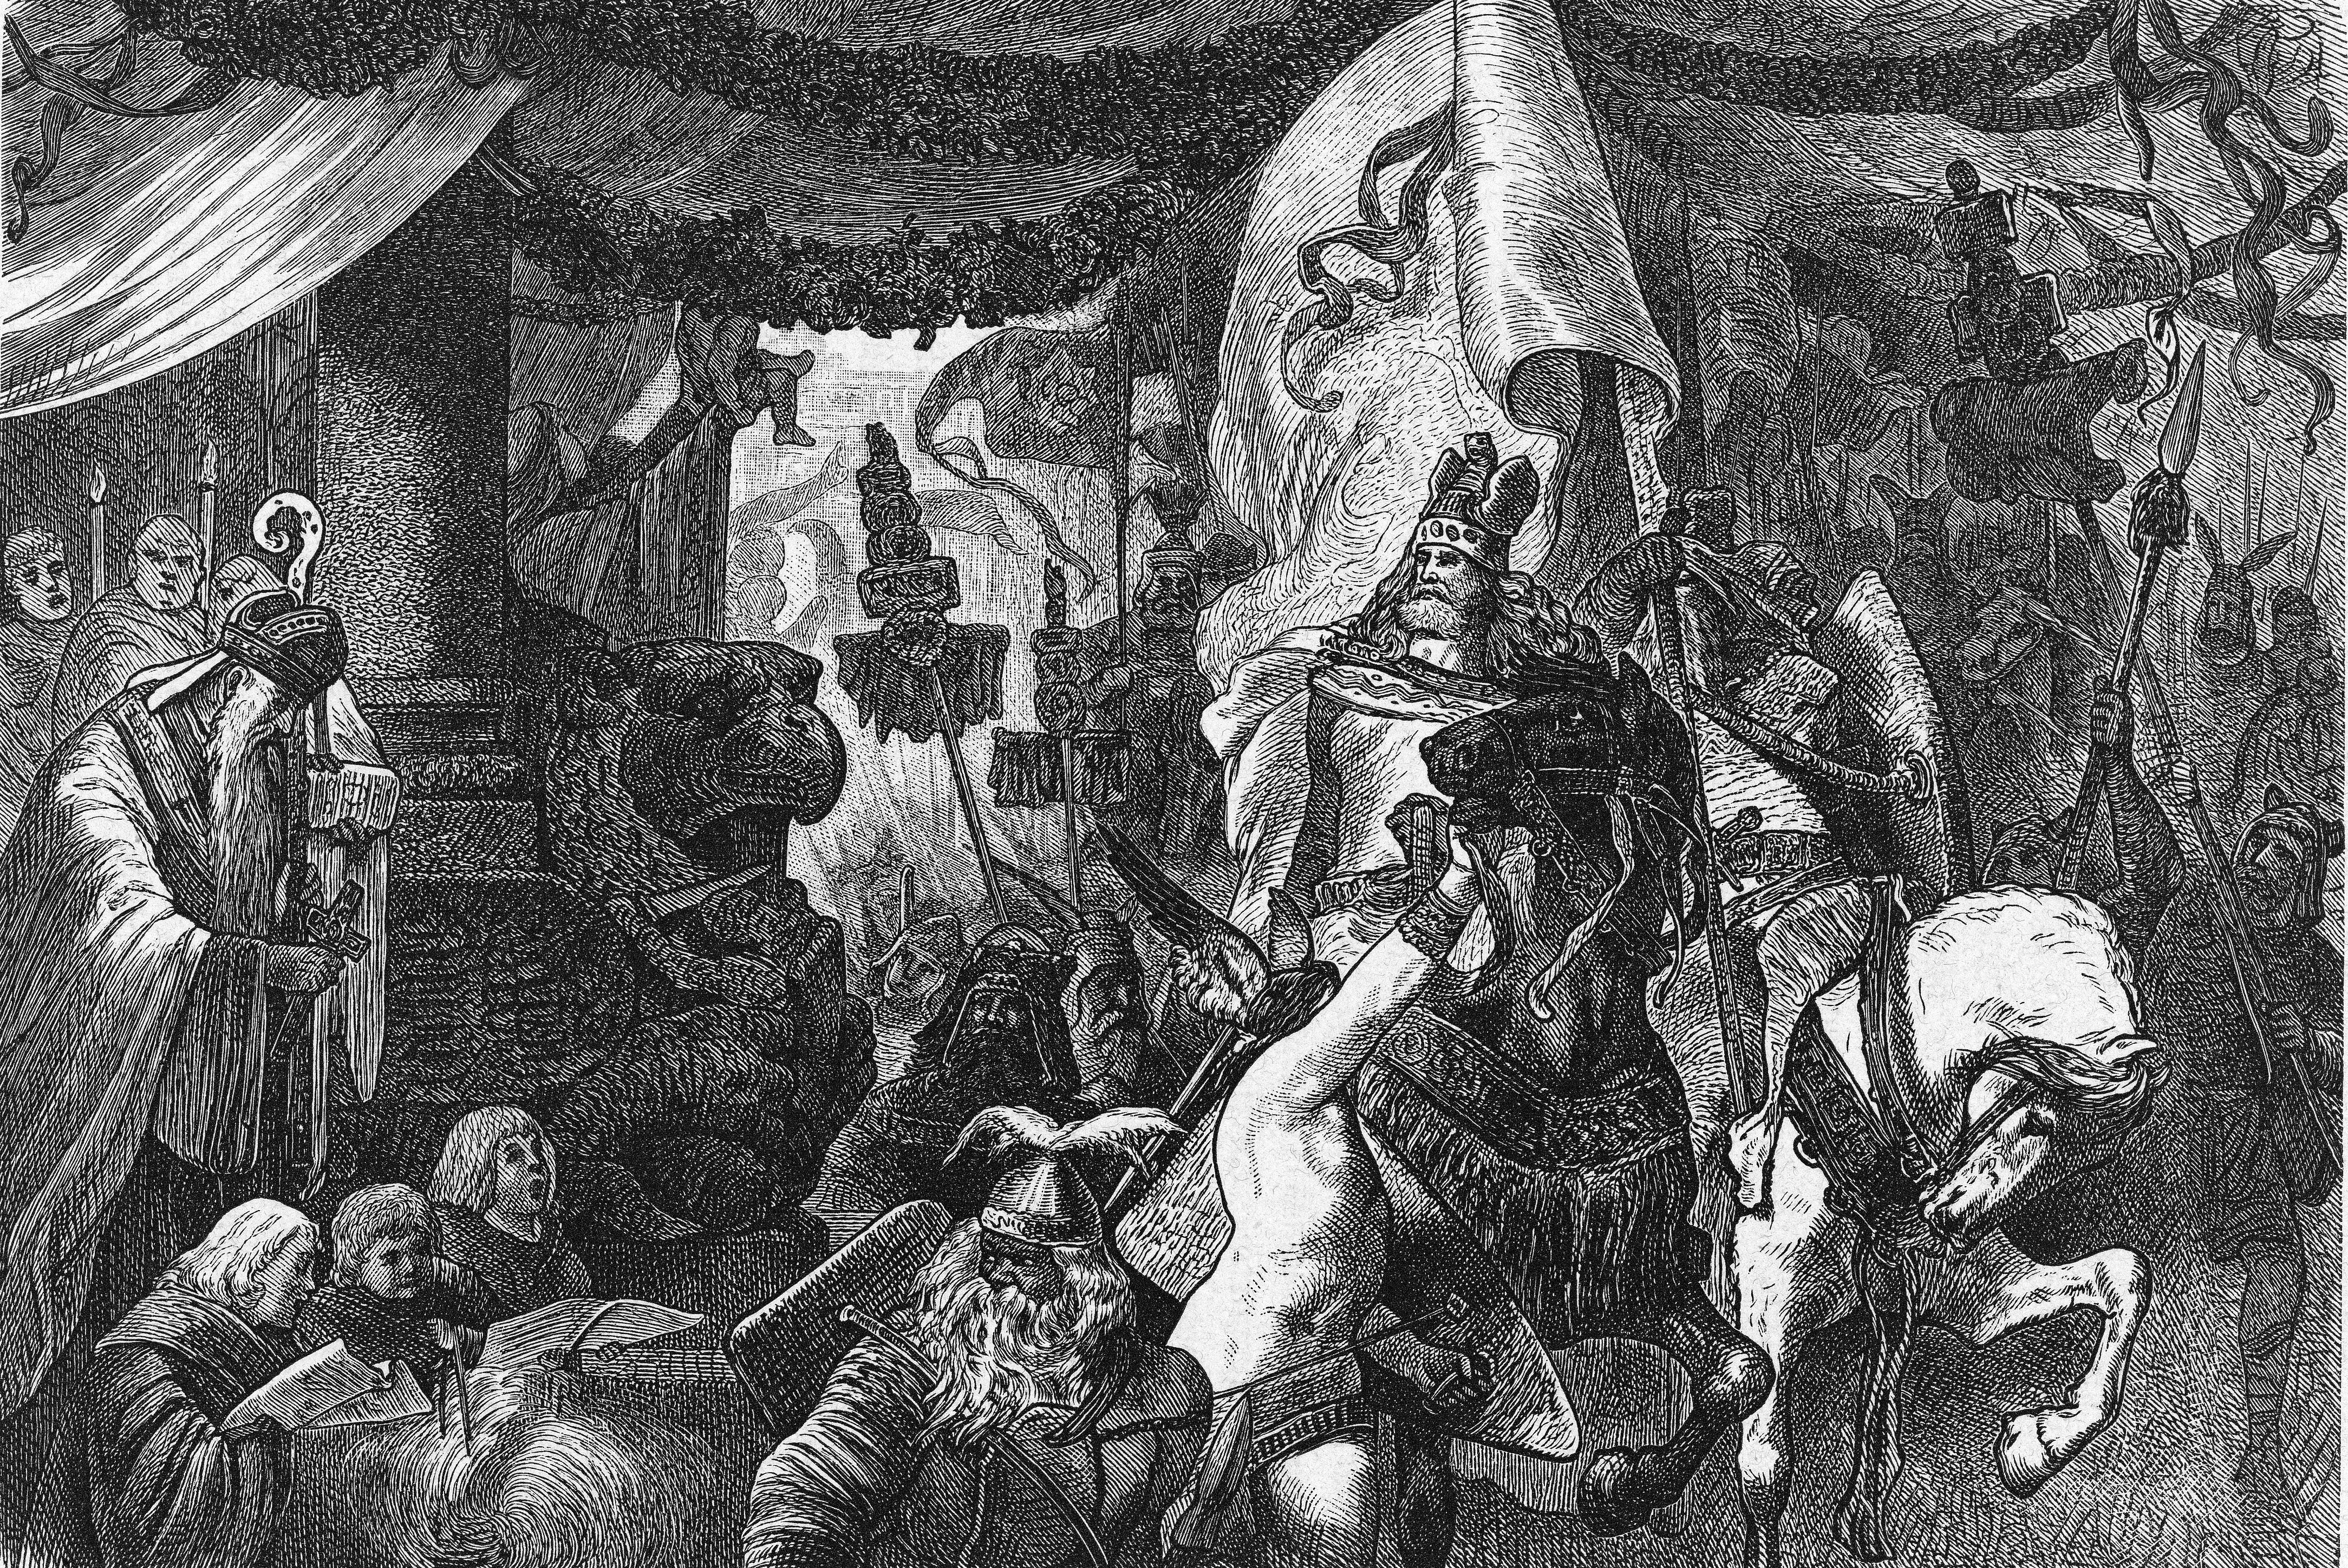 Theodoric (454 - 526), king of the Ostragoths (center, under flag), returns to Rome after succesfully defeating the Germanic armies under Odoacer where his is greeted by Pope Symmachus (right, with bowed head), 500.